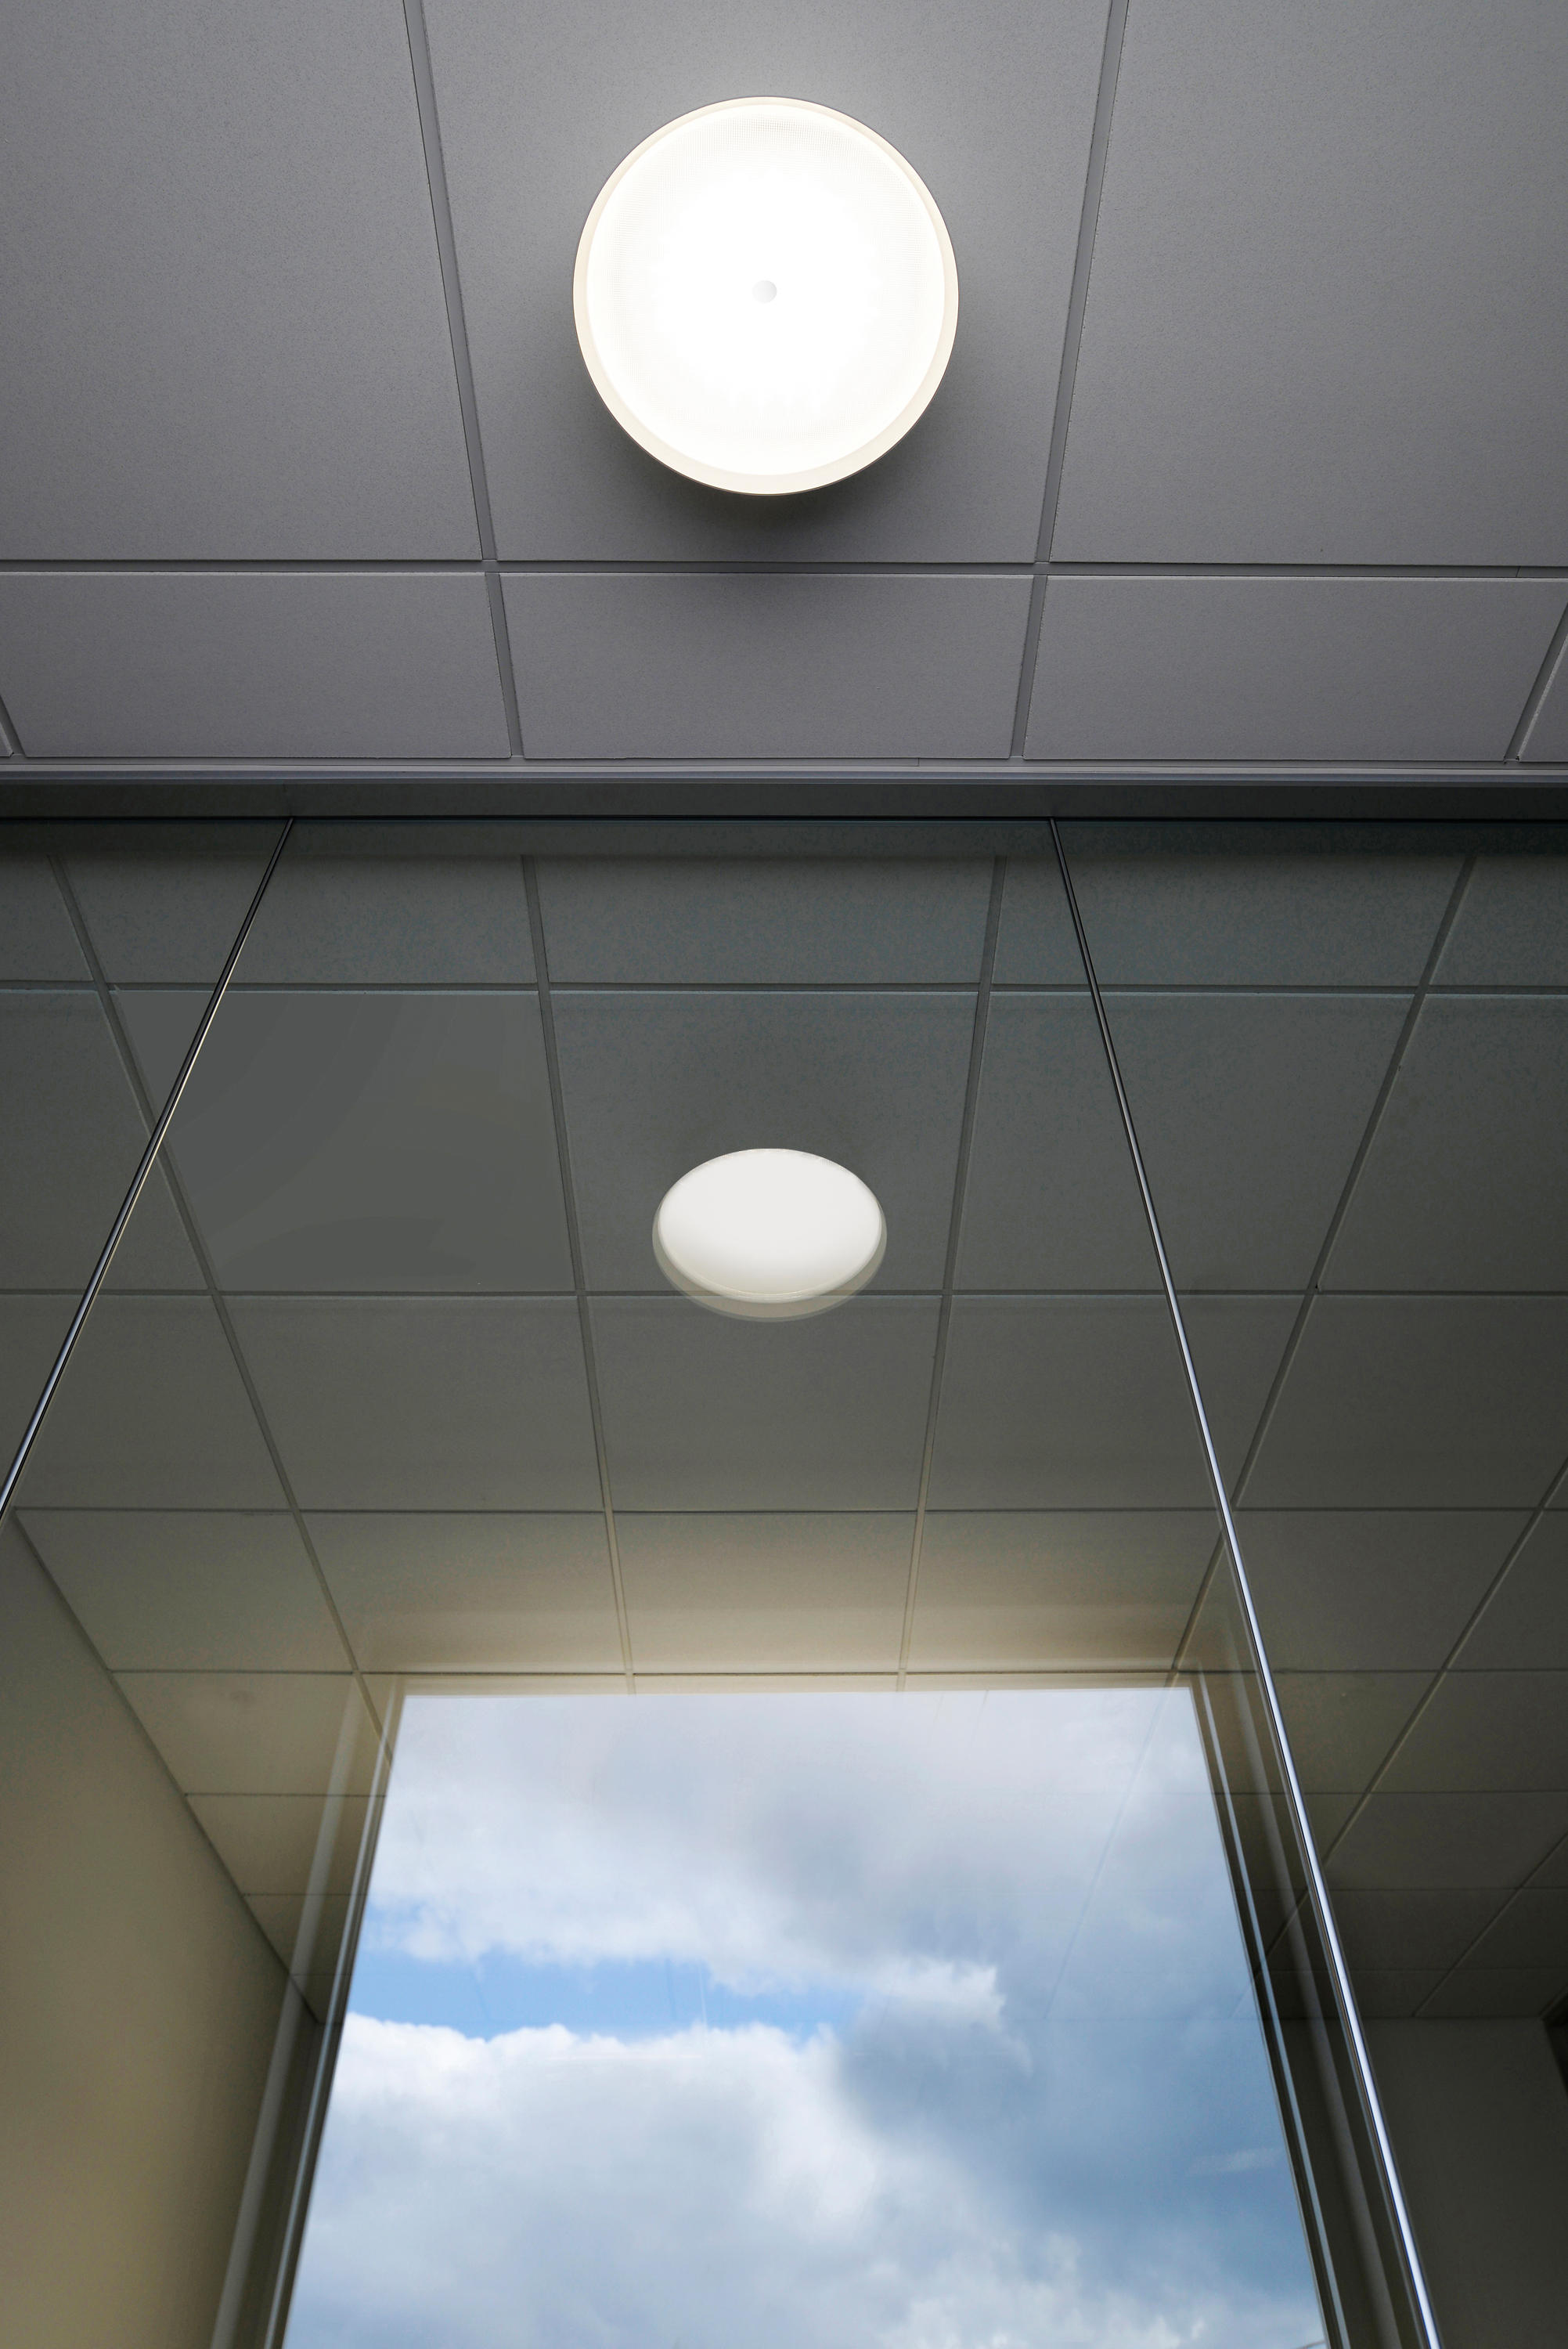 light ceiling exam lighting led mount nova medical nxc burton